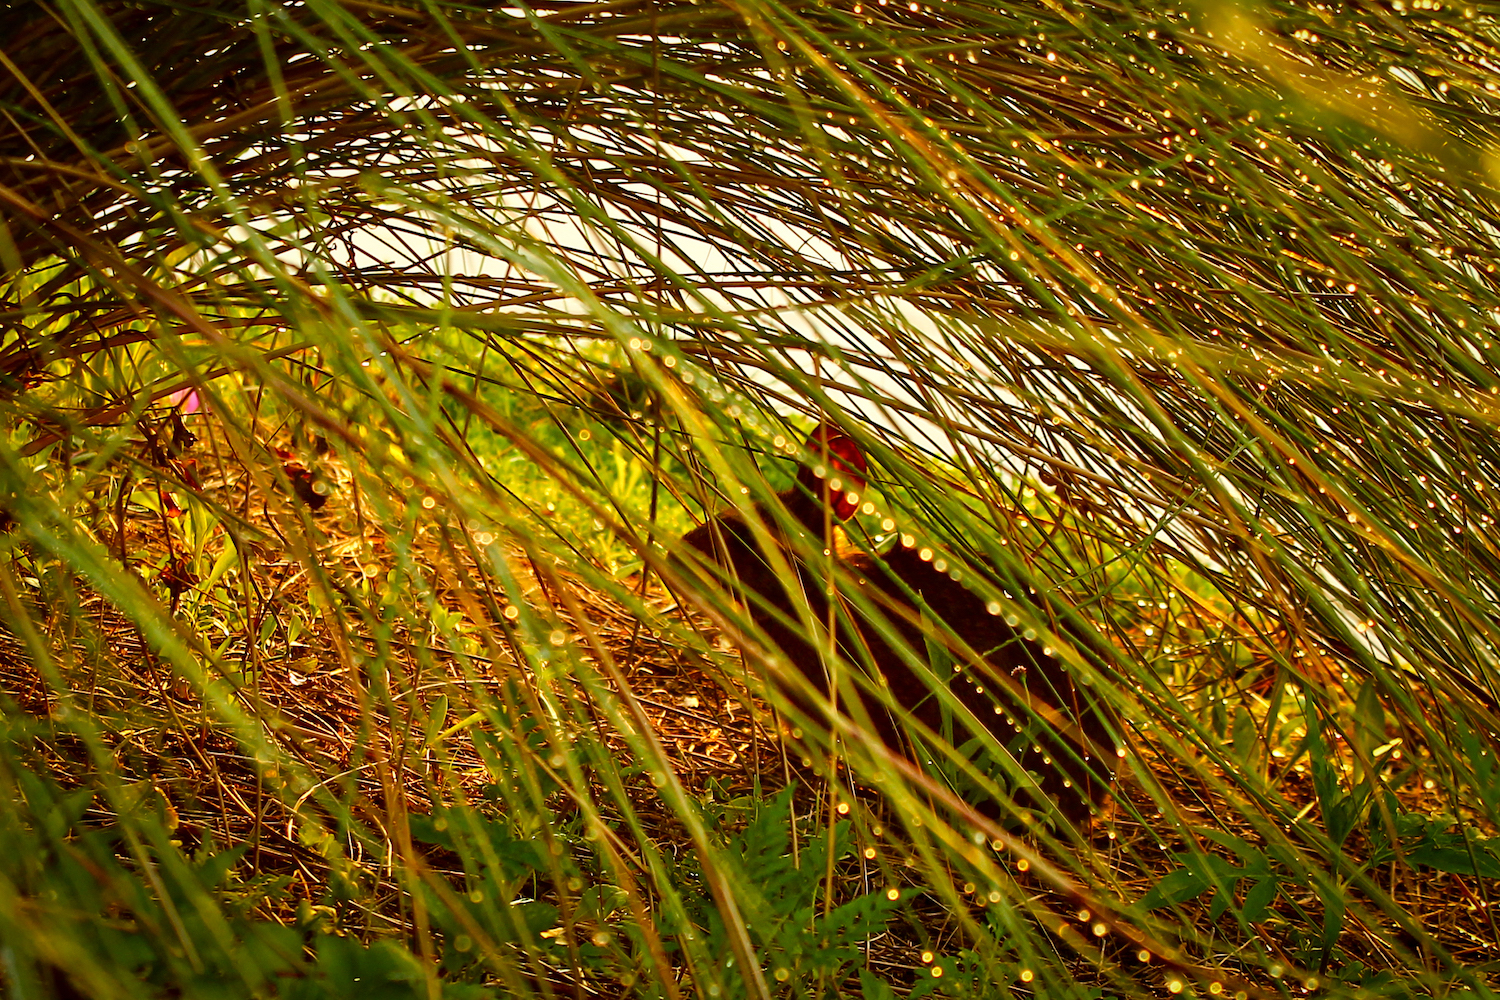 Hidden Marsh Rabbit, St. Petersburg FL, Canon DSLR